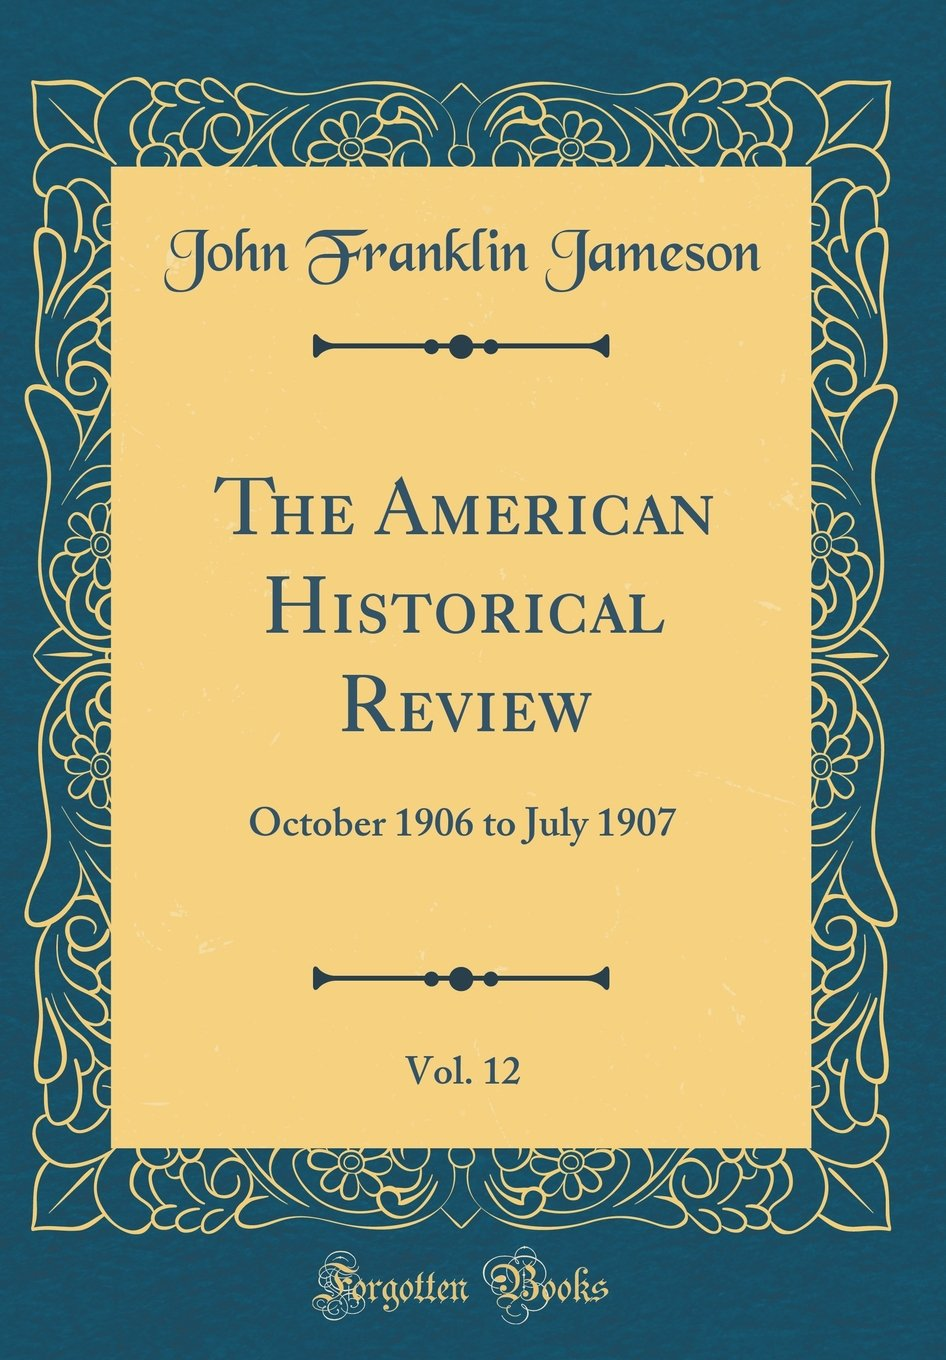 The American Historical Review, Vol. 12: October 1906 to July 1907 (Classic Reprint) pdf